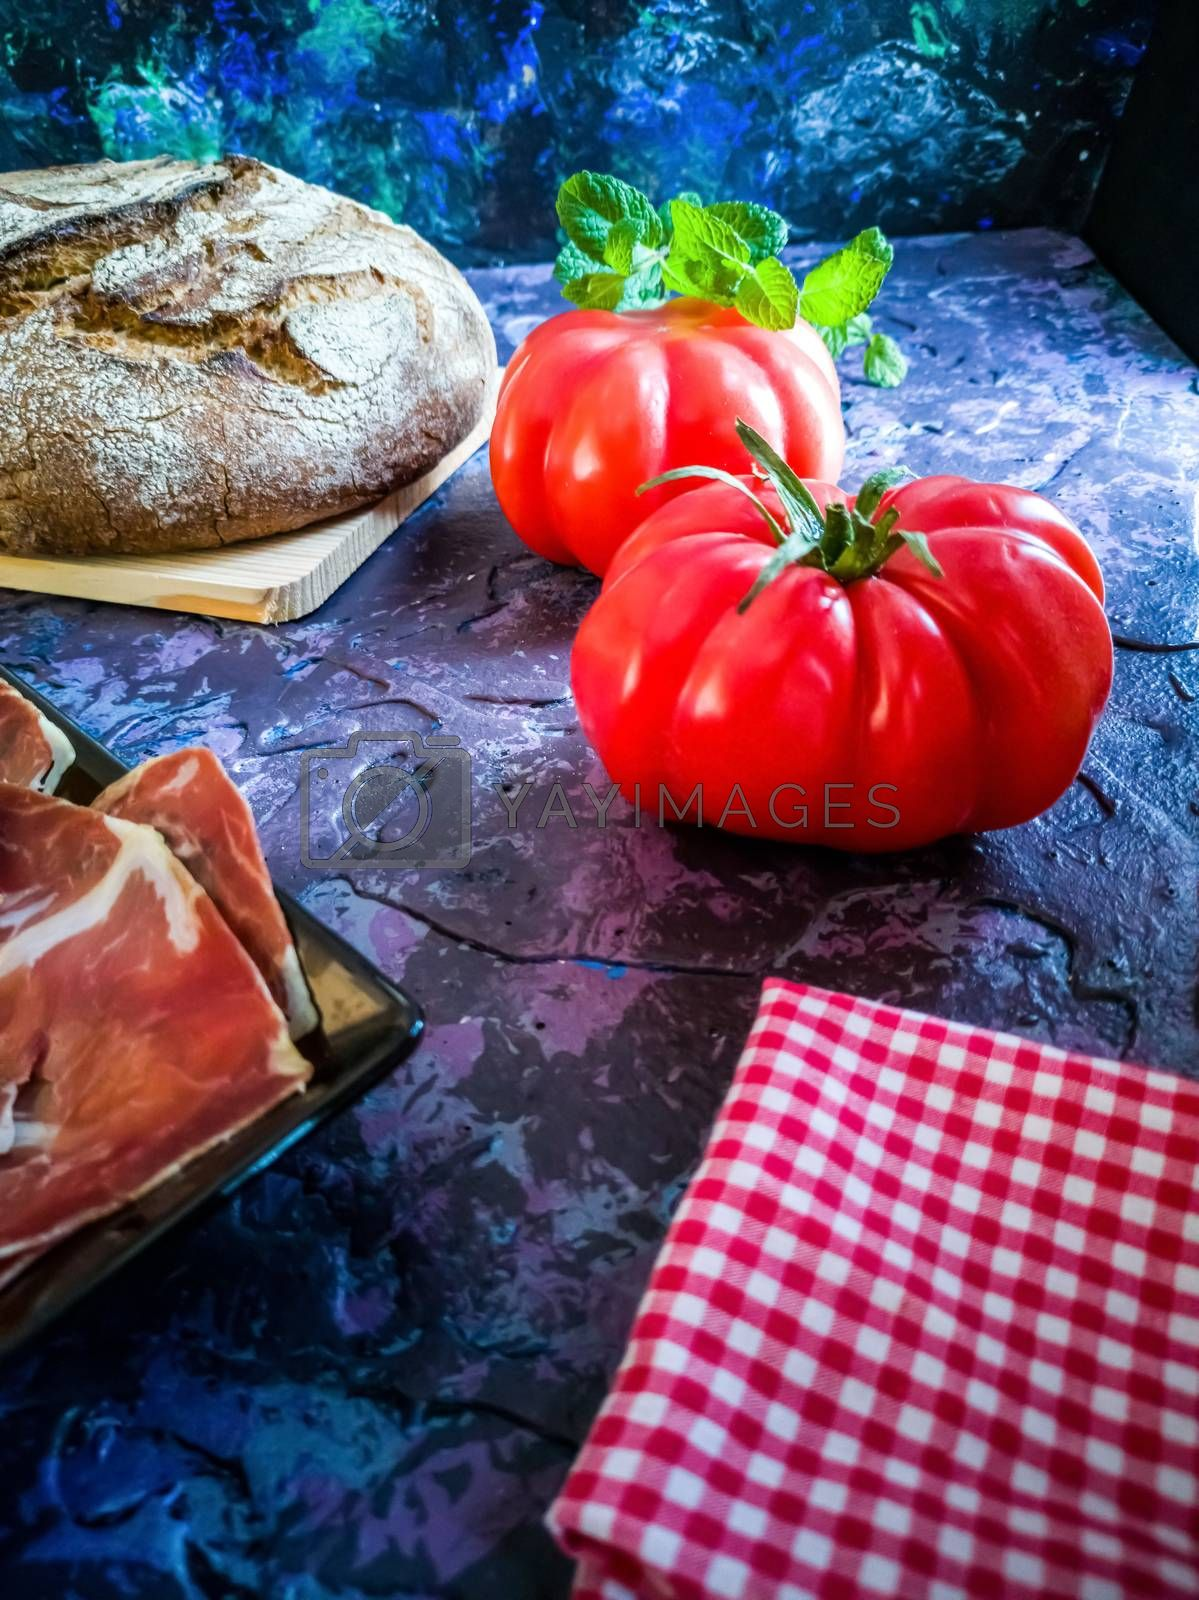 Ham, tomato, bread and herbs in composition on dark background by Barriolo82